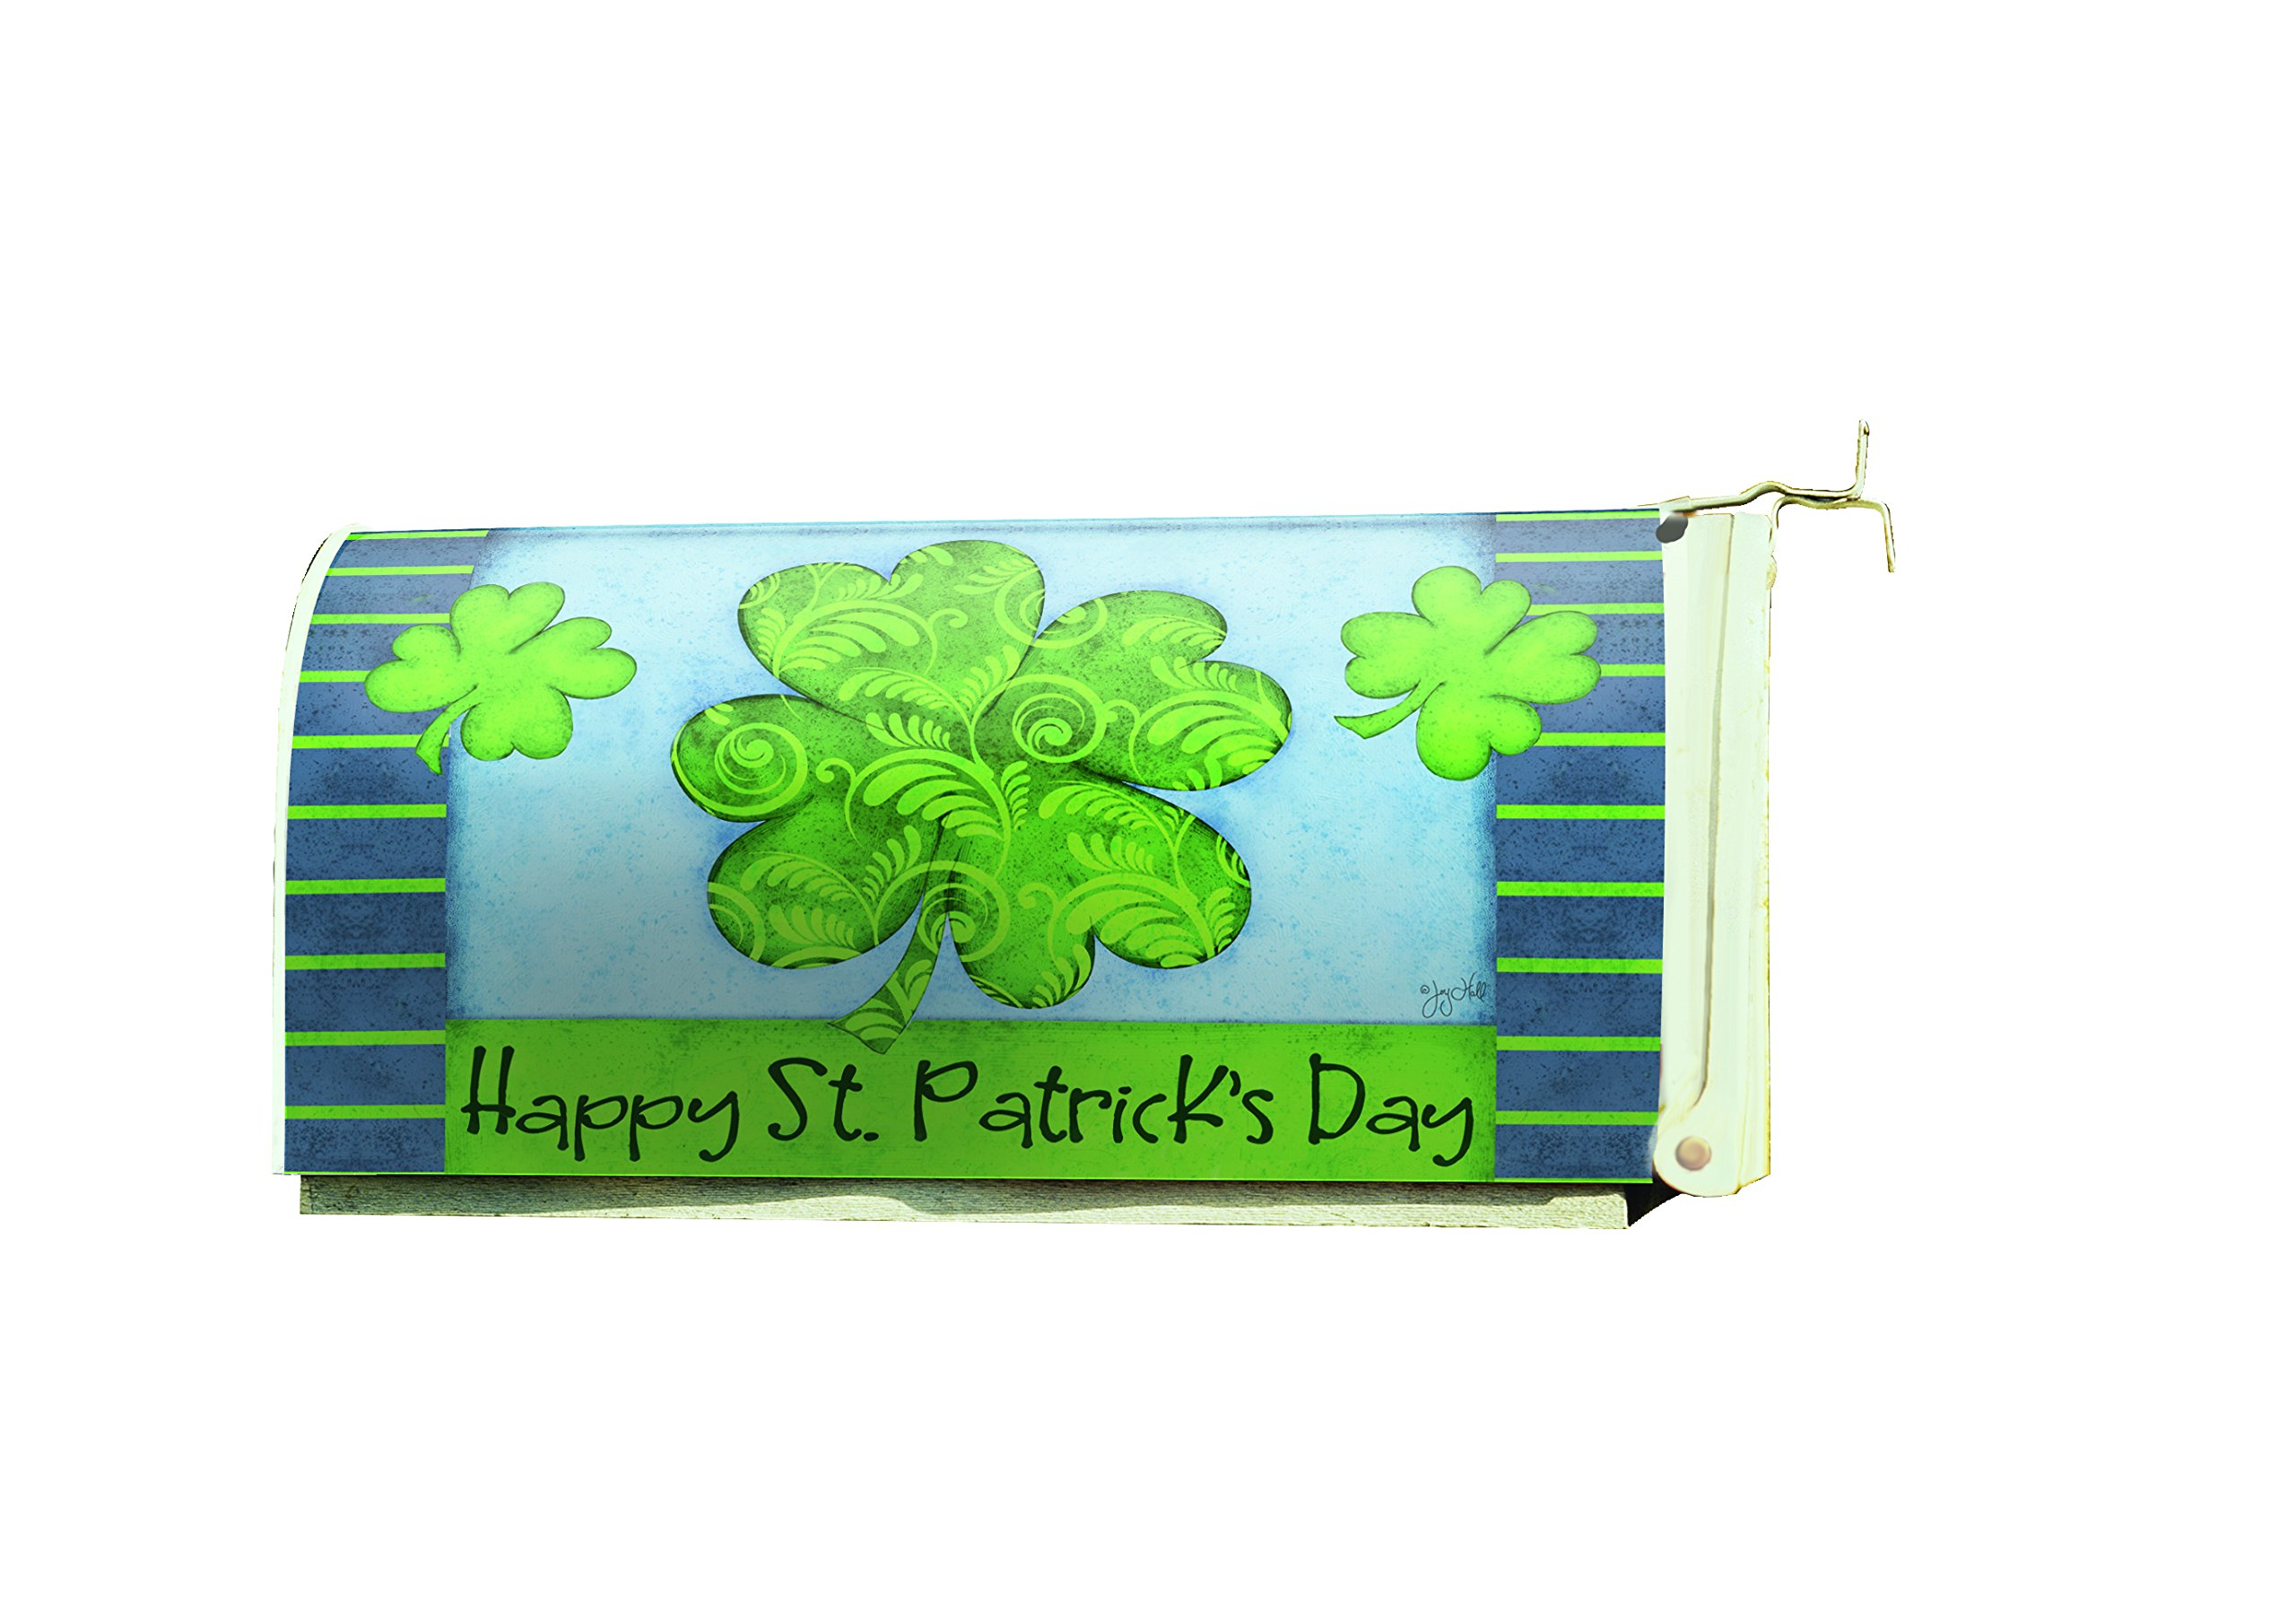 Lang - Magnetic, All-Weather, Standard-Size - Mailbox Cover - St. Patrick's Day, Exclusive Artwork Joy Hall